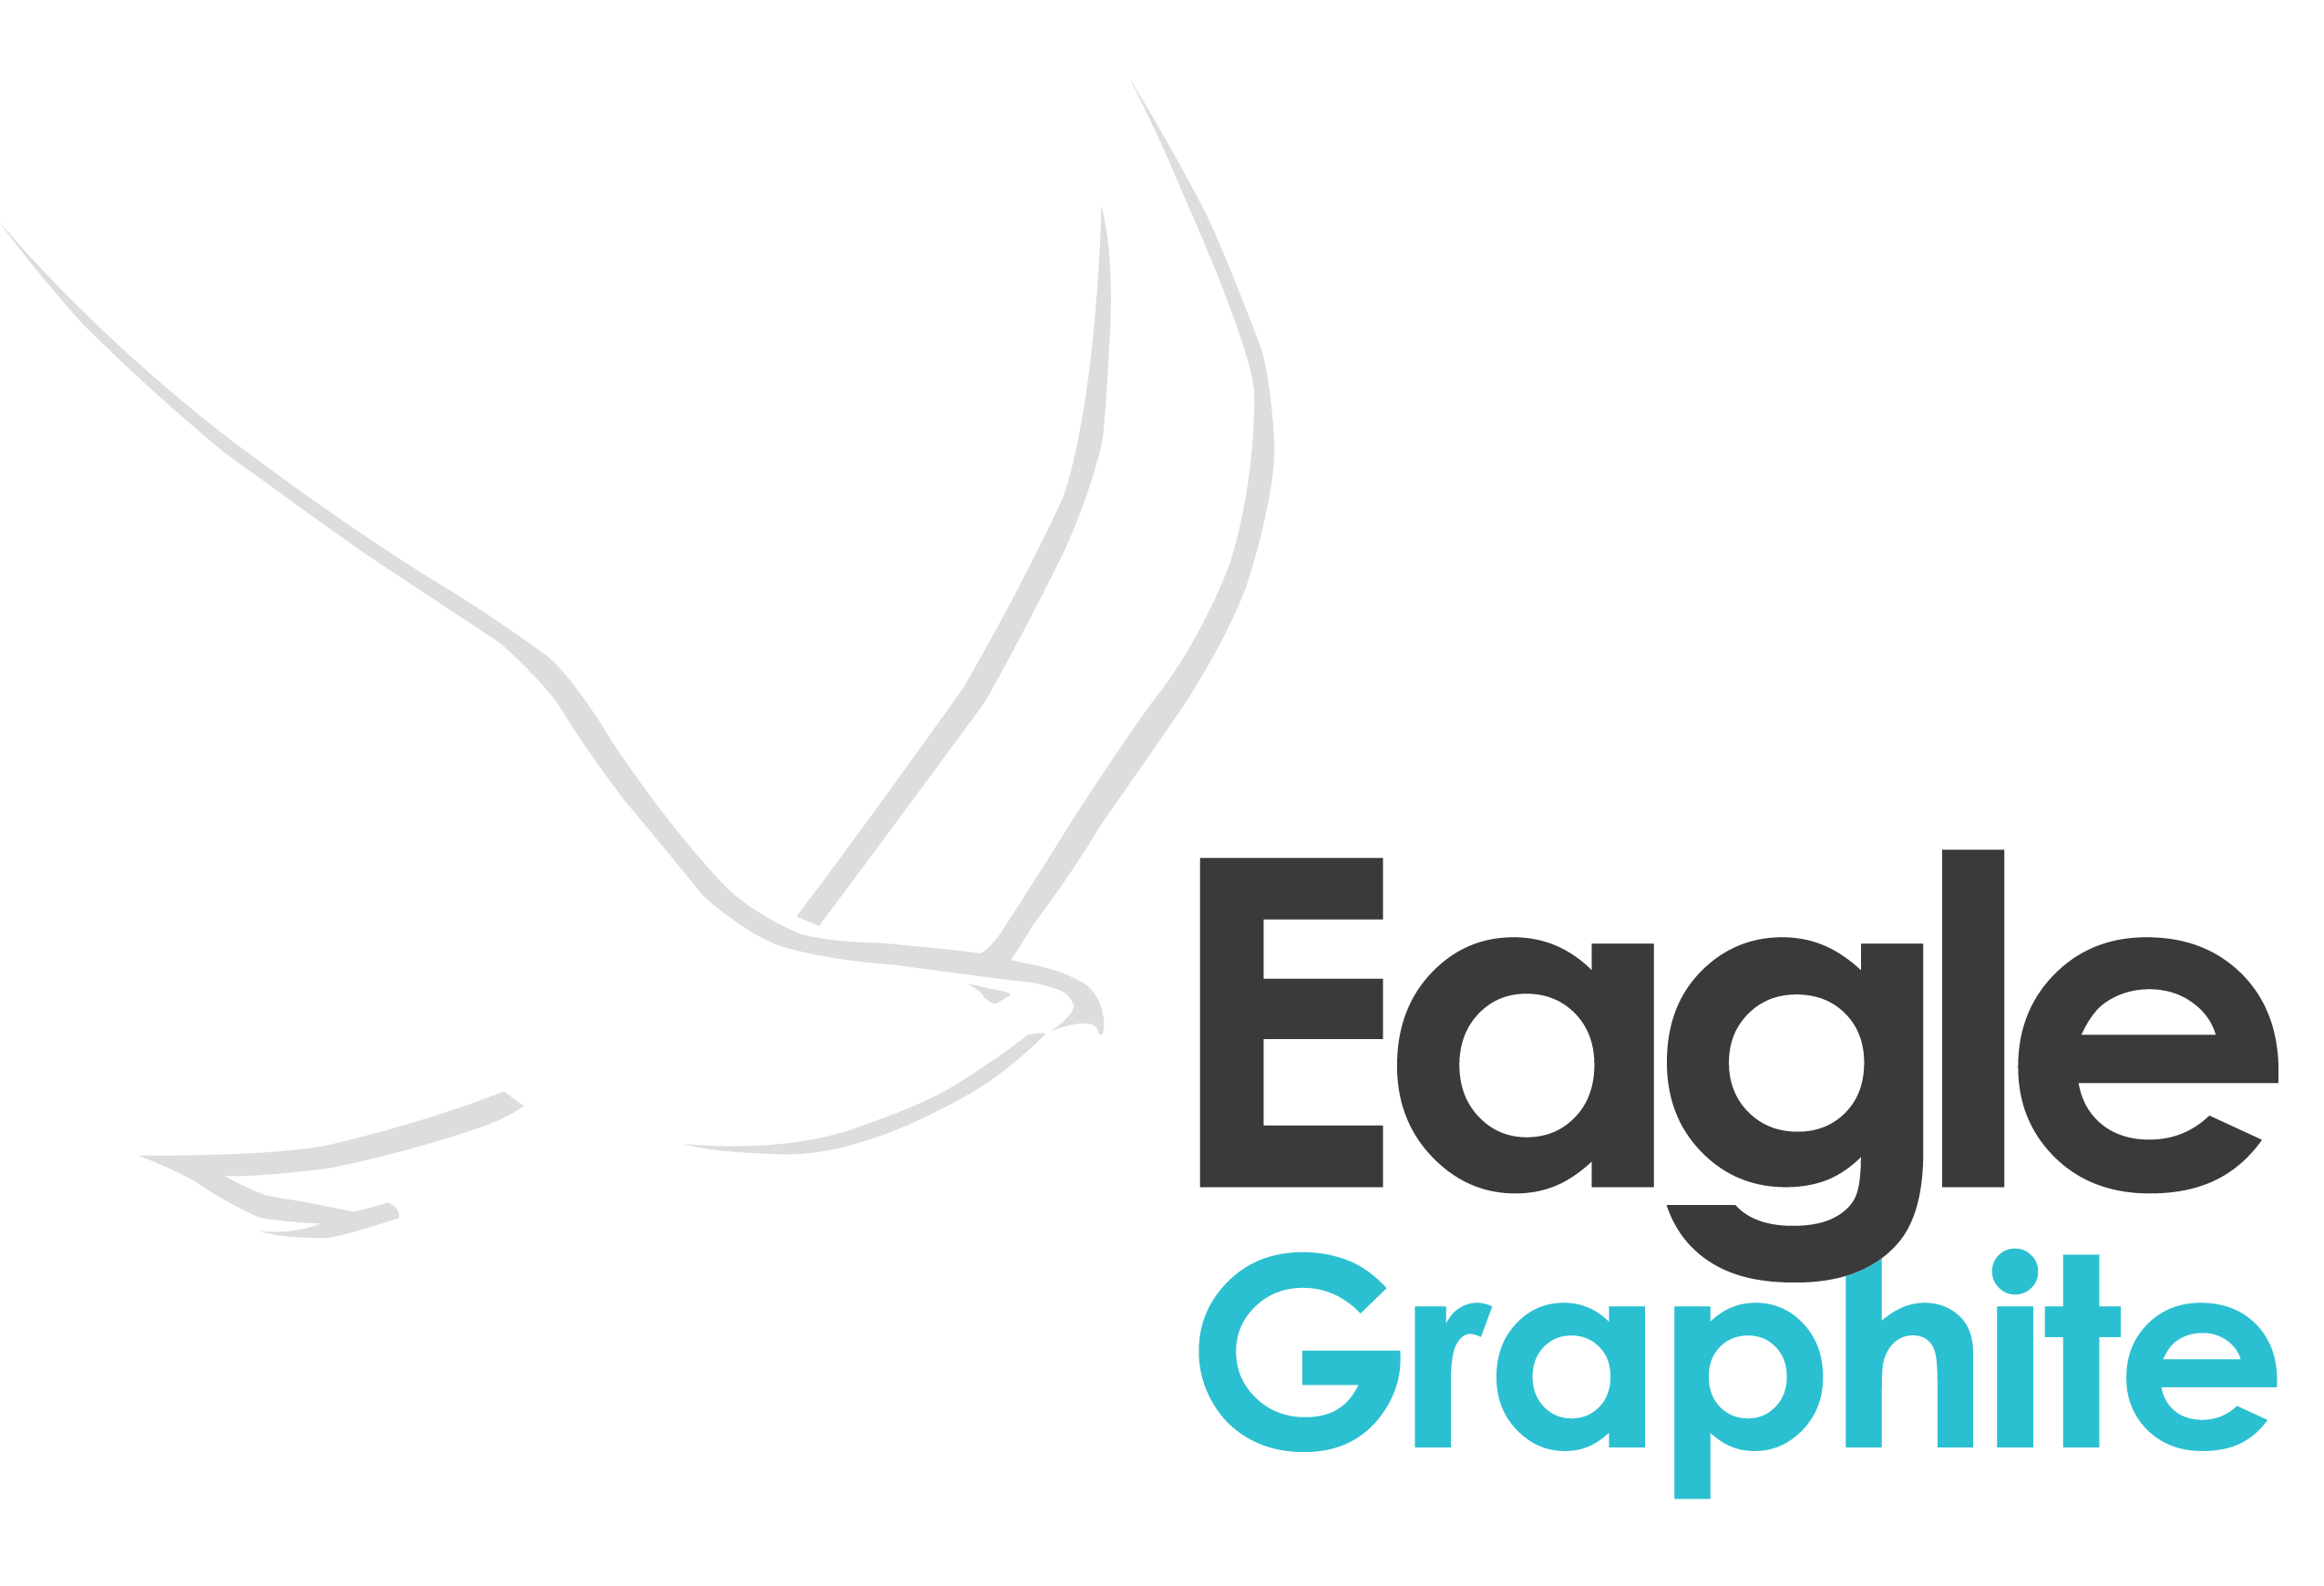 Letter of intent with Eagle Graphite